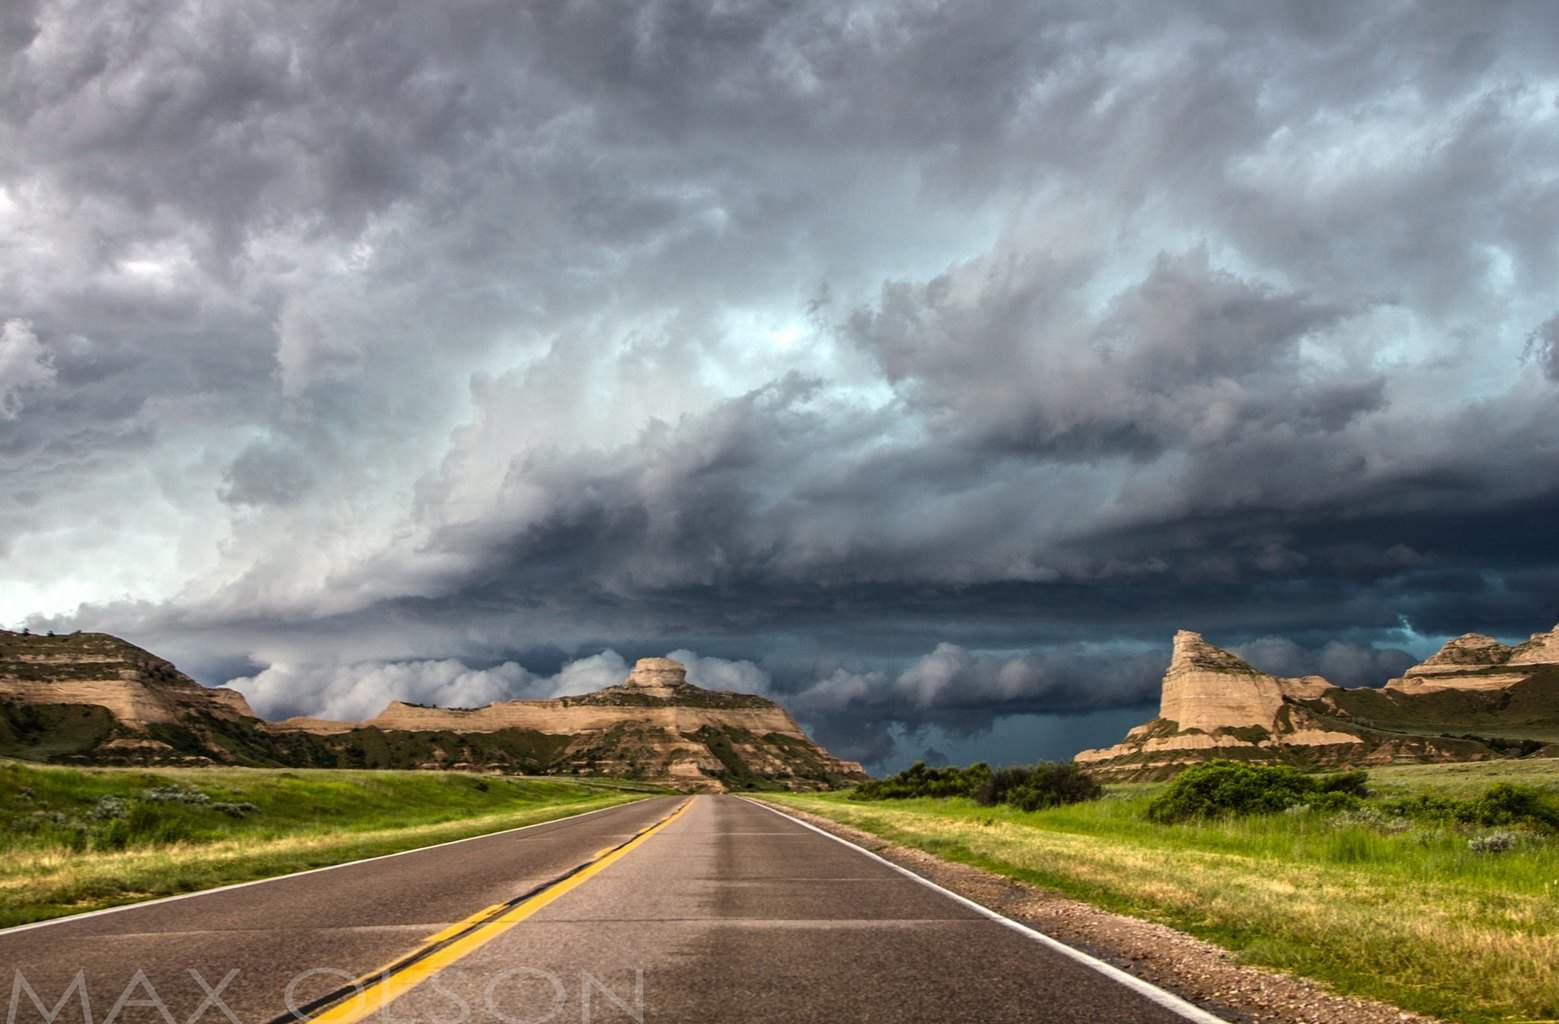 Big hailer rolling over the bluffs and into town, earlier on this storm did substantial damage to crops and homes in Torrington, WY .  June 16, 2015 Scottsbluff, NE